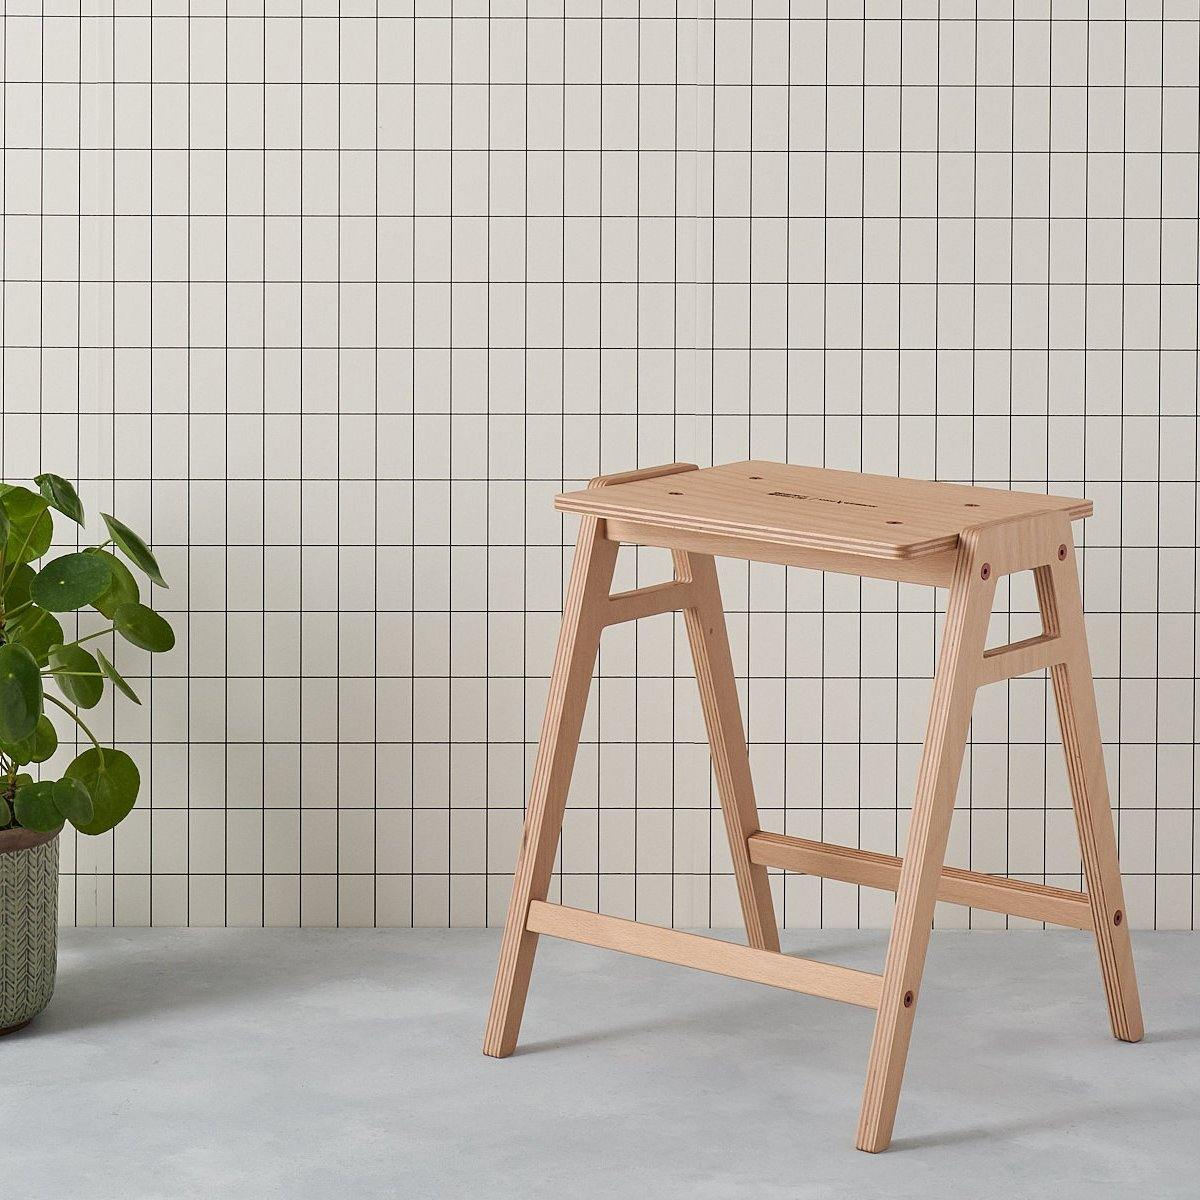 LDN Stool Lab KW3 SOR 12